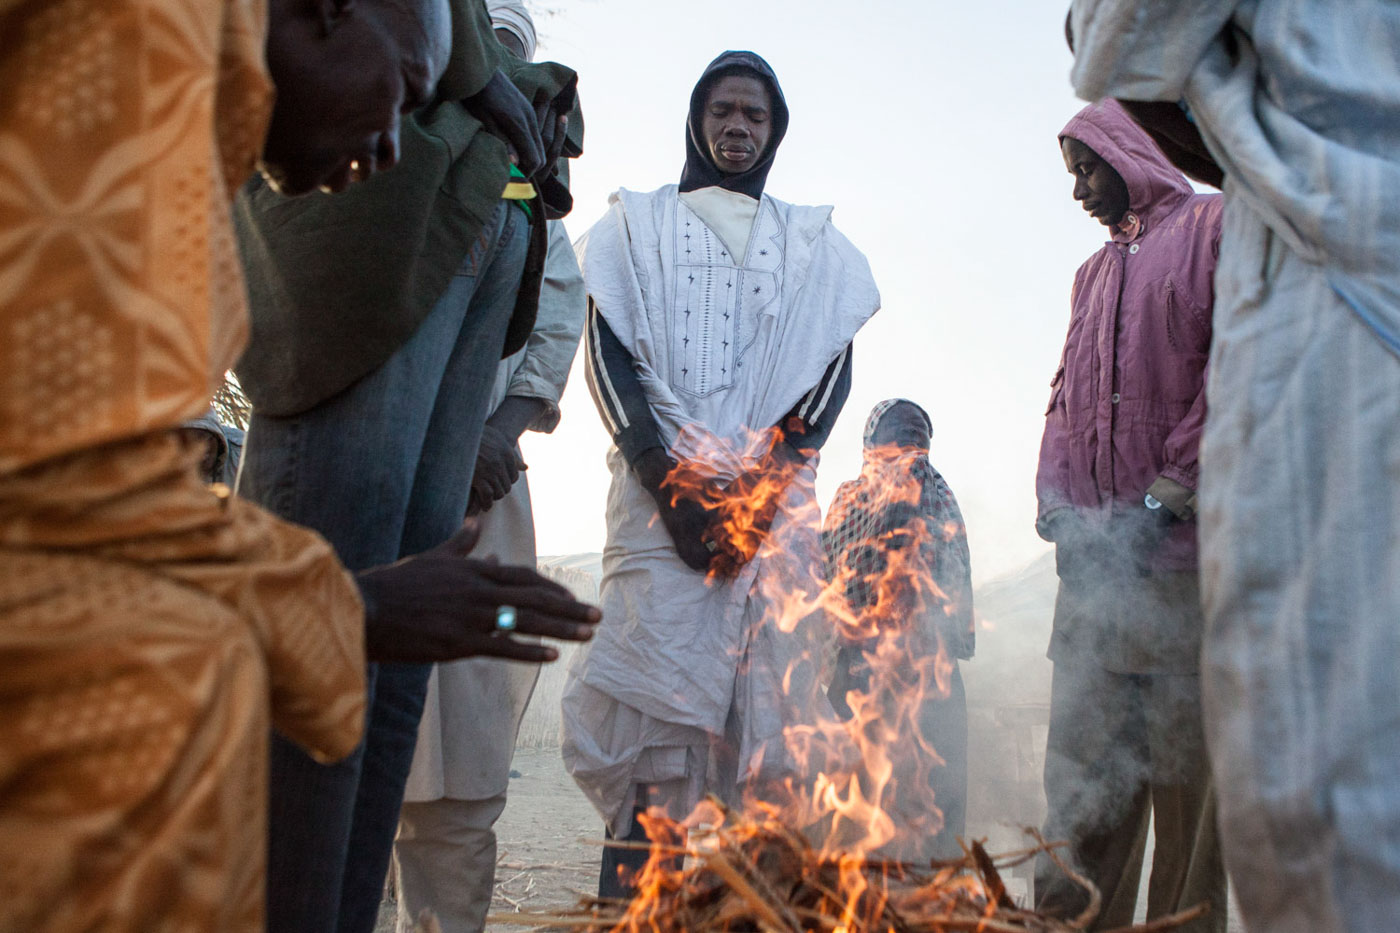 Men warm themselves by the fire in Djalori Camp in Diffa, Niger.300,000 people displaced by the Boko Haram crisis are taking refuge in southern Niger, straining the already vulnerable environment of the Lake Chad Basin.